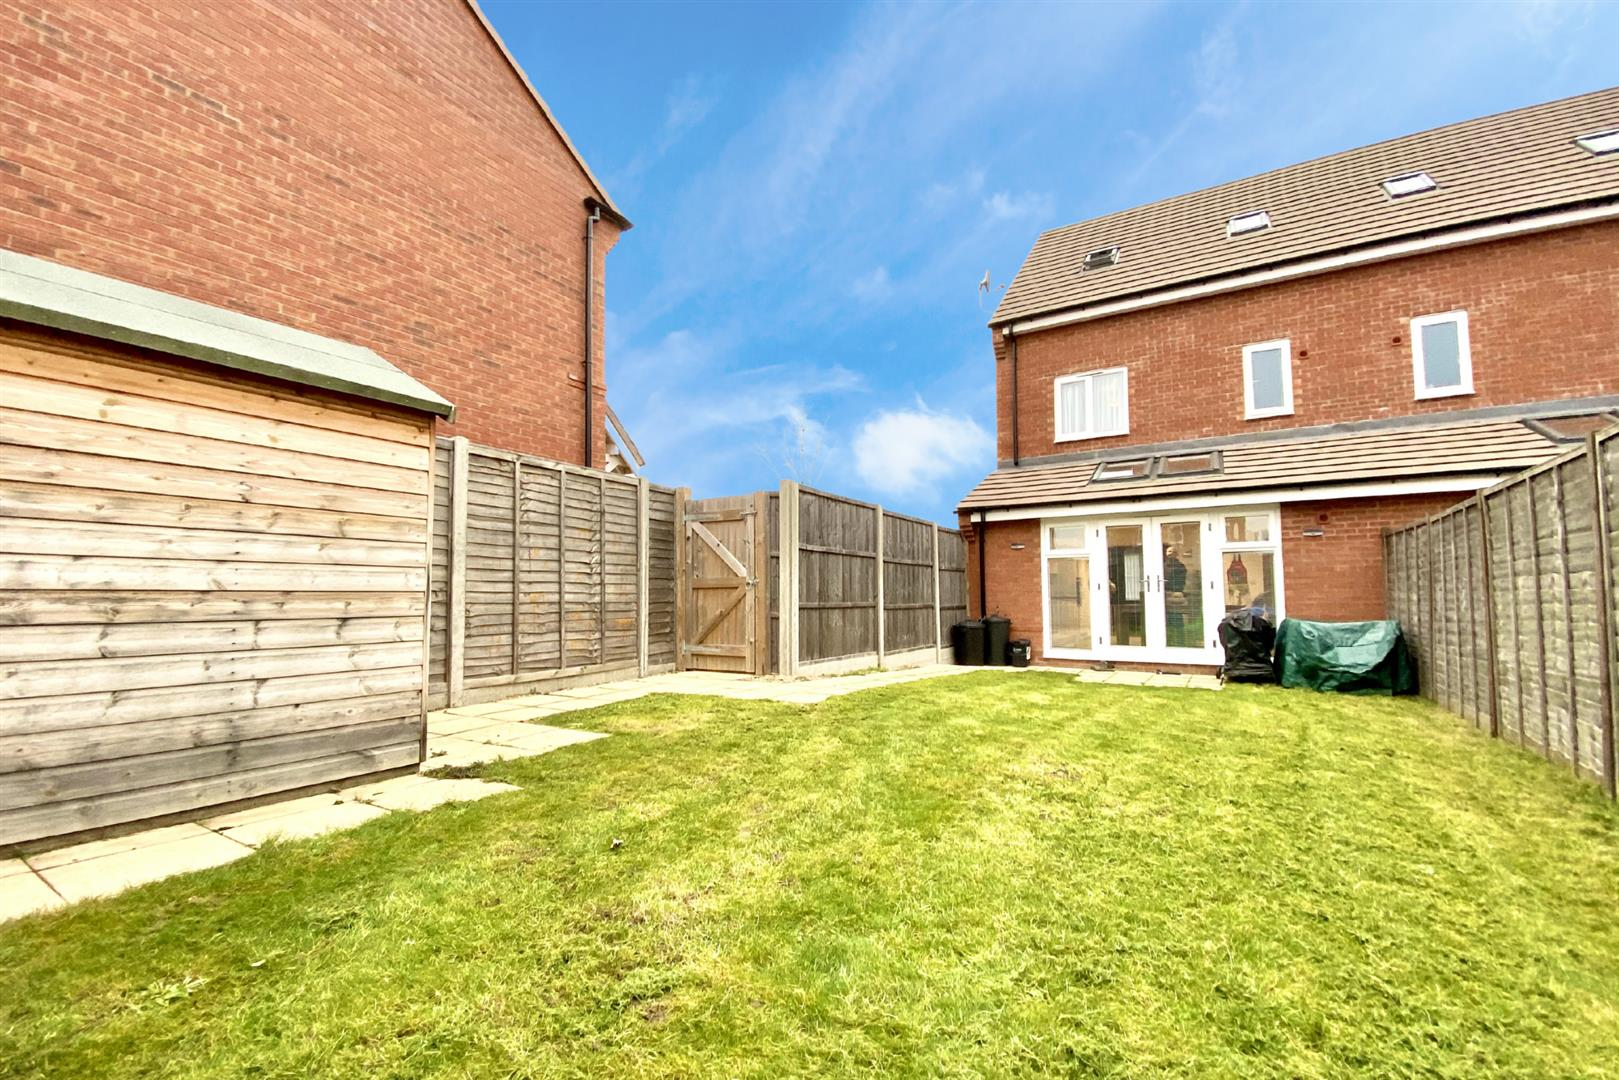 3 bed semi-detached for sale in Shinfield 4